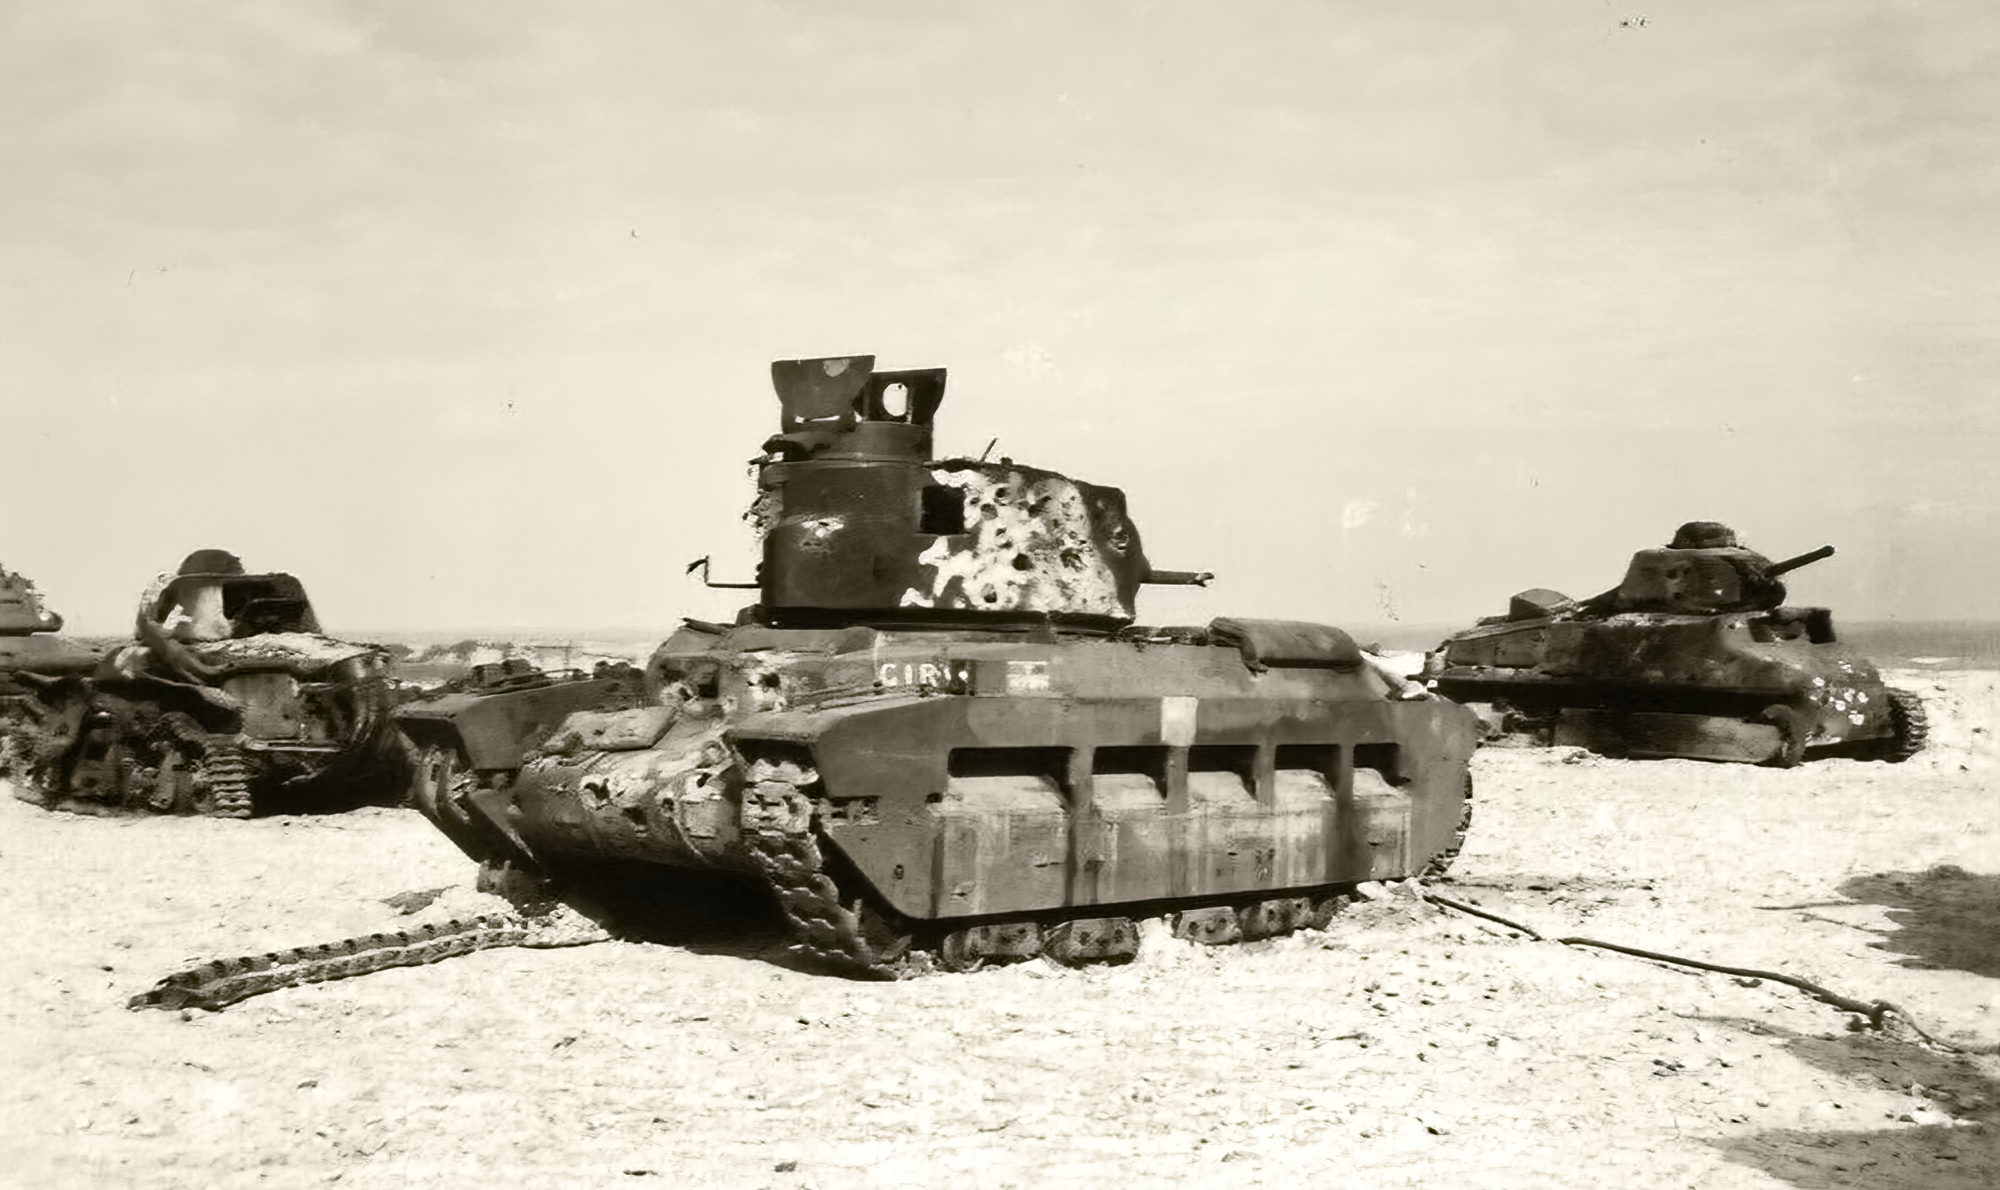 British Matilda abandoned with French Renault R35 and Somua S35 during battle of France 1940 ebay 01